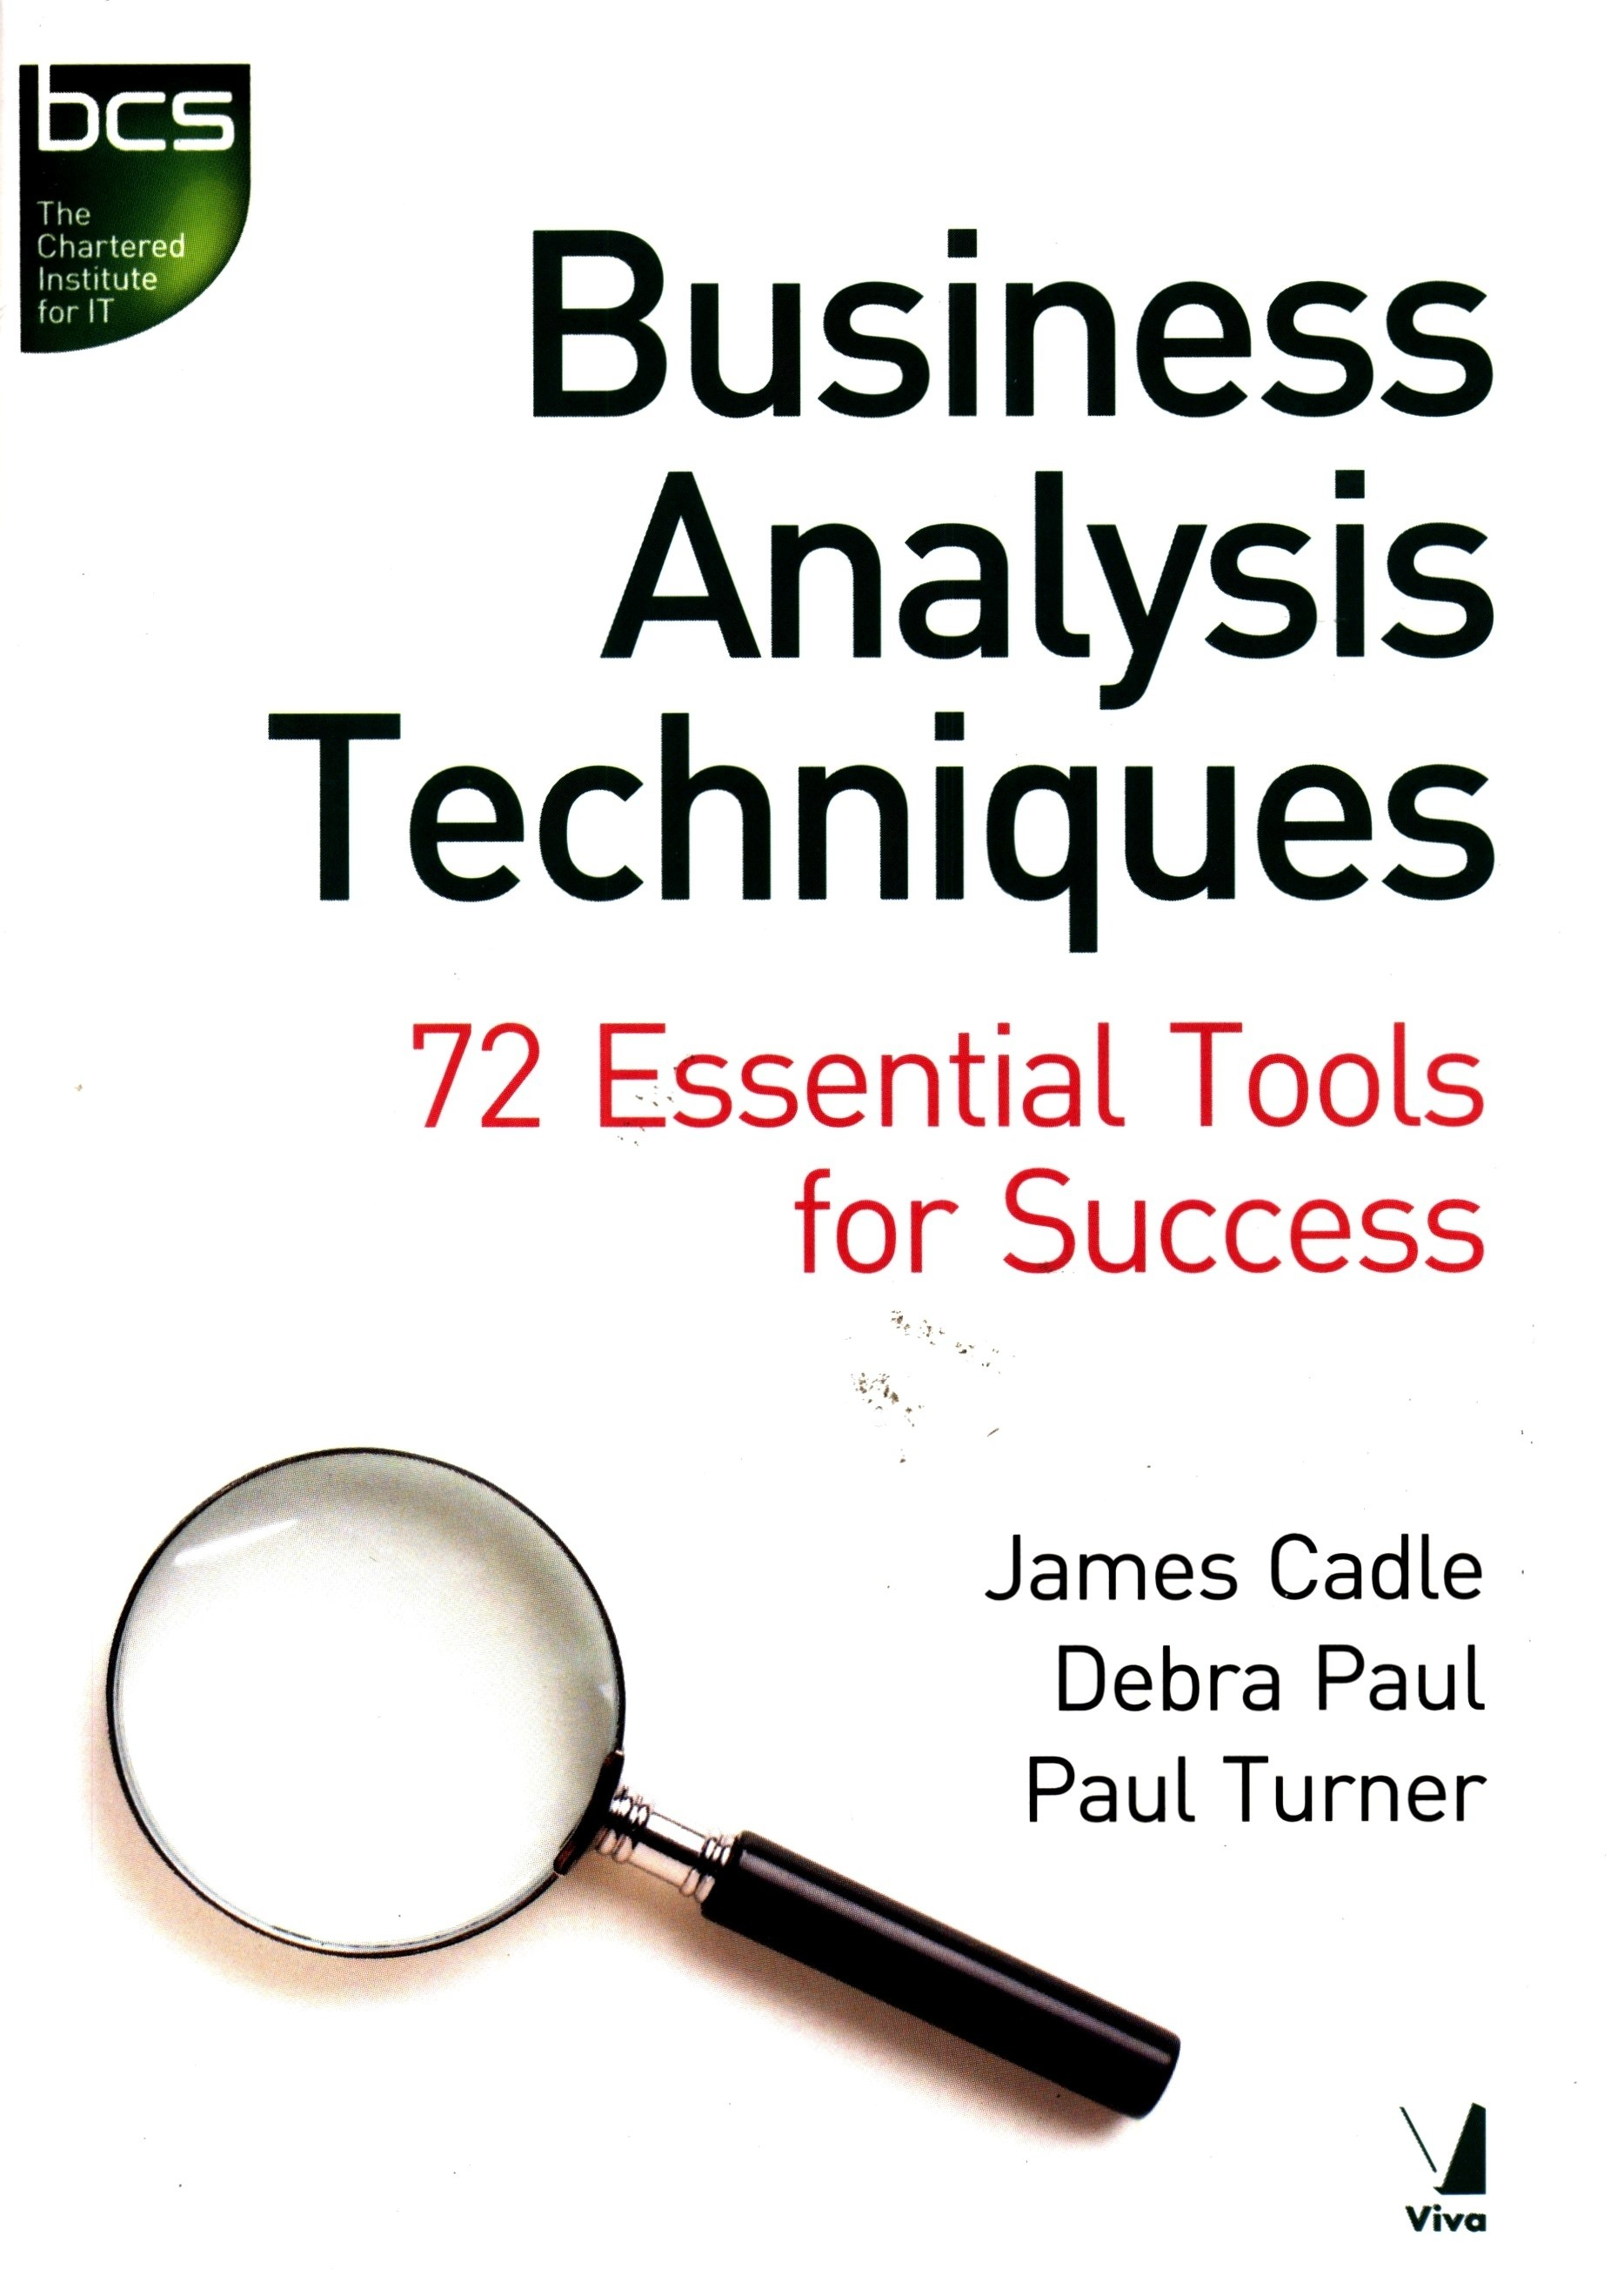 business analysis tools and techniques This wide variety of business analysis tools will help you reduce costs and improve your bottom line this category includes a number of mostly unrelated techniques that in the right circumstances can be very powerful.